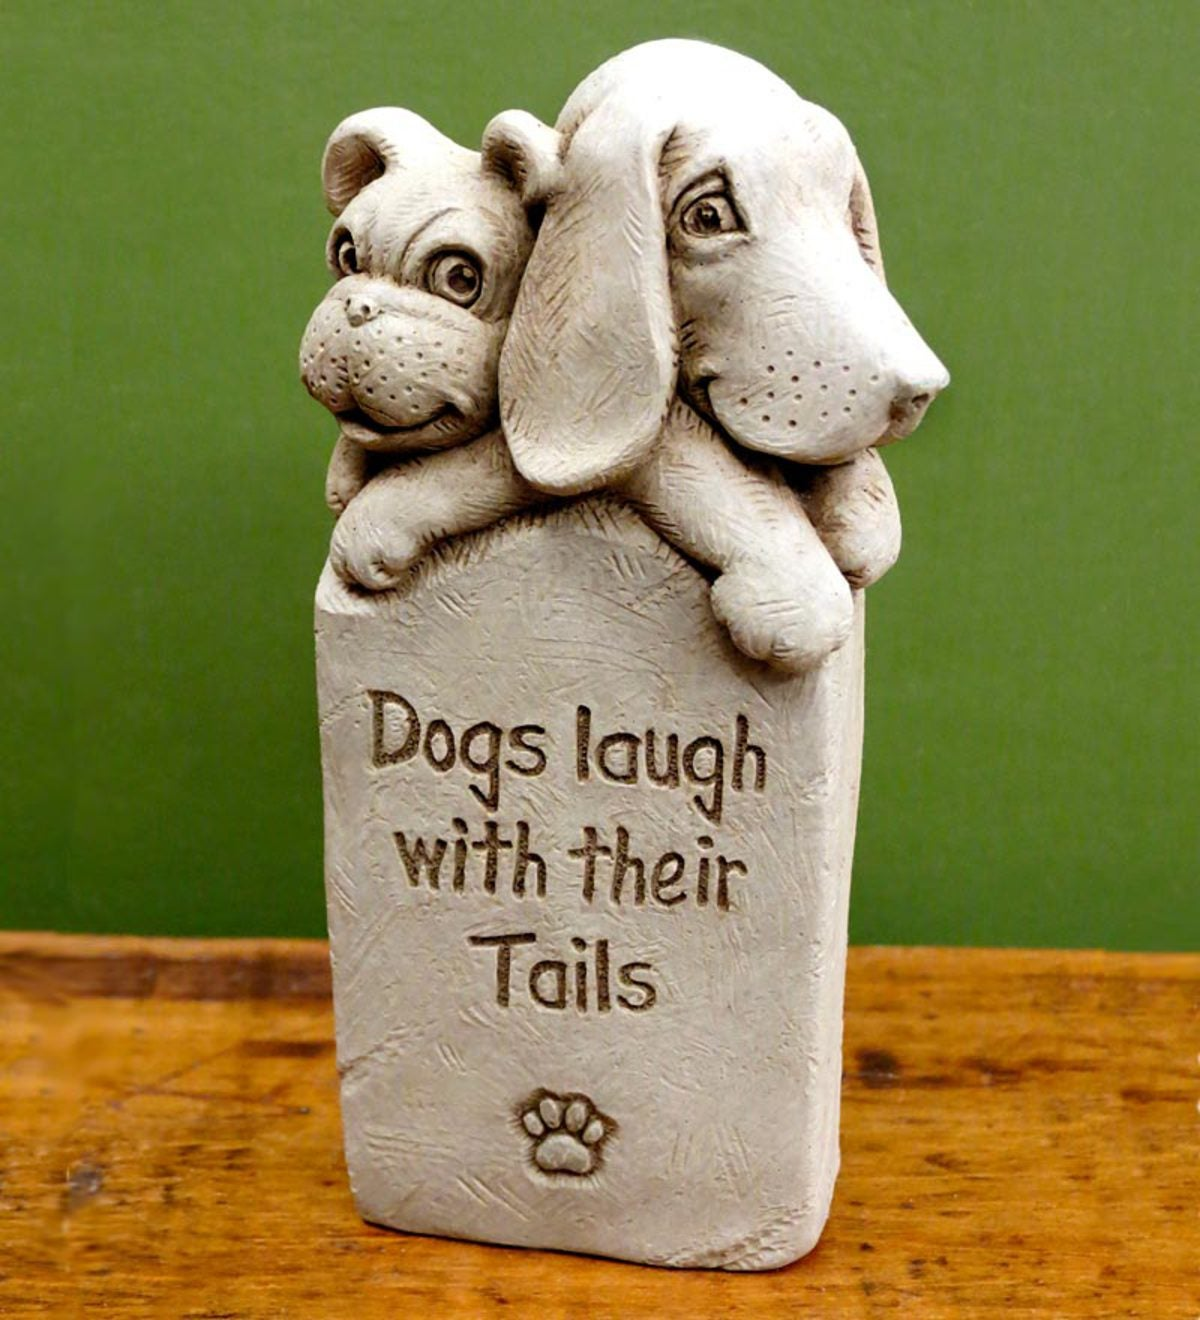 Dogs Laugh With Their Tails Plaque by Carruth Studios